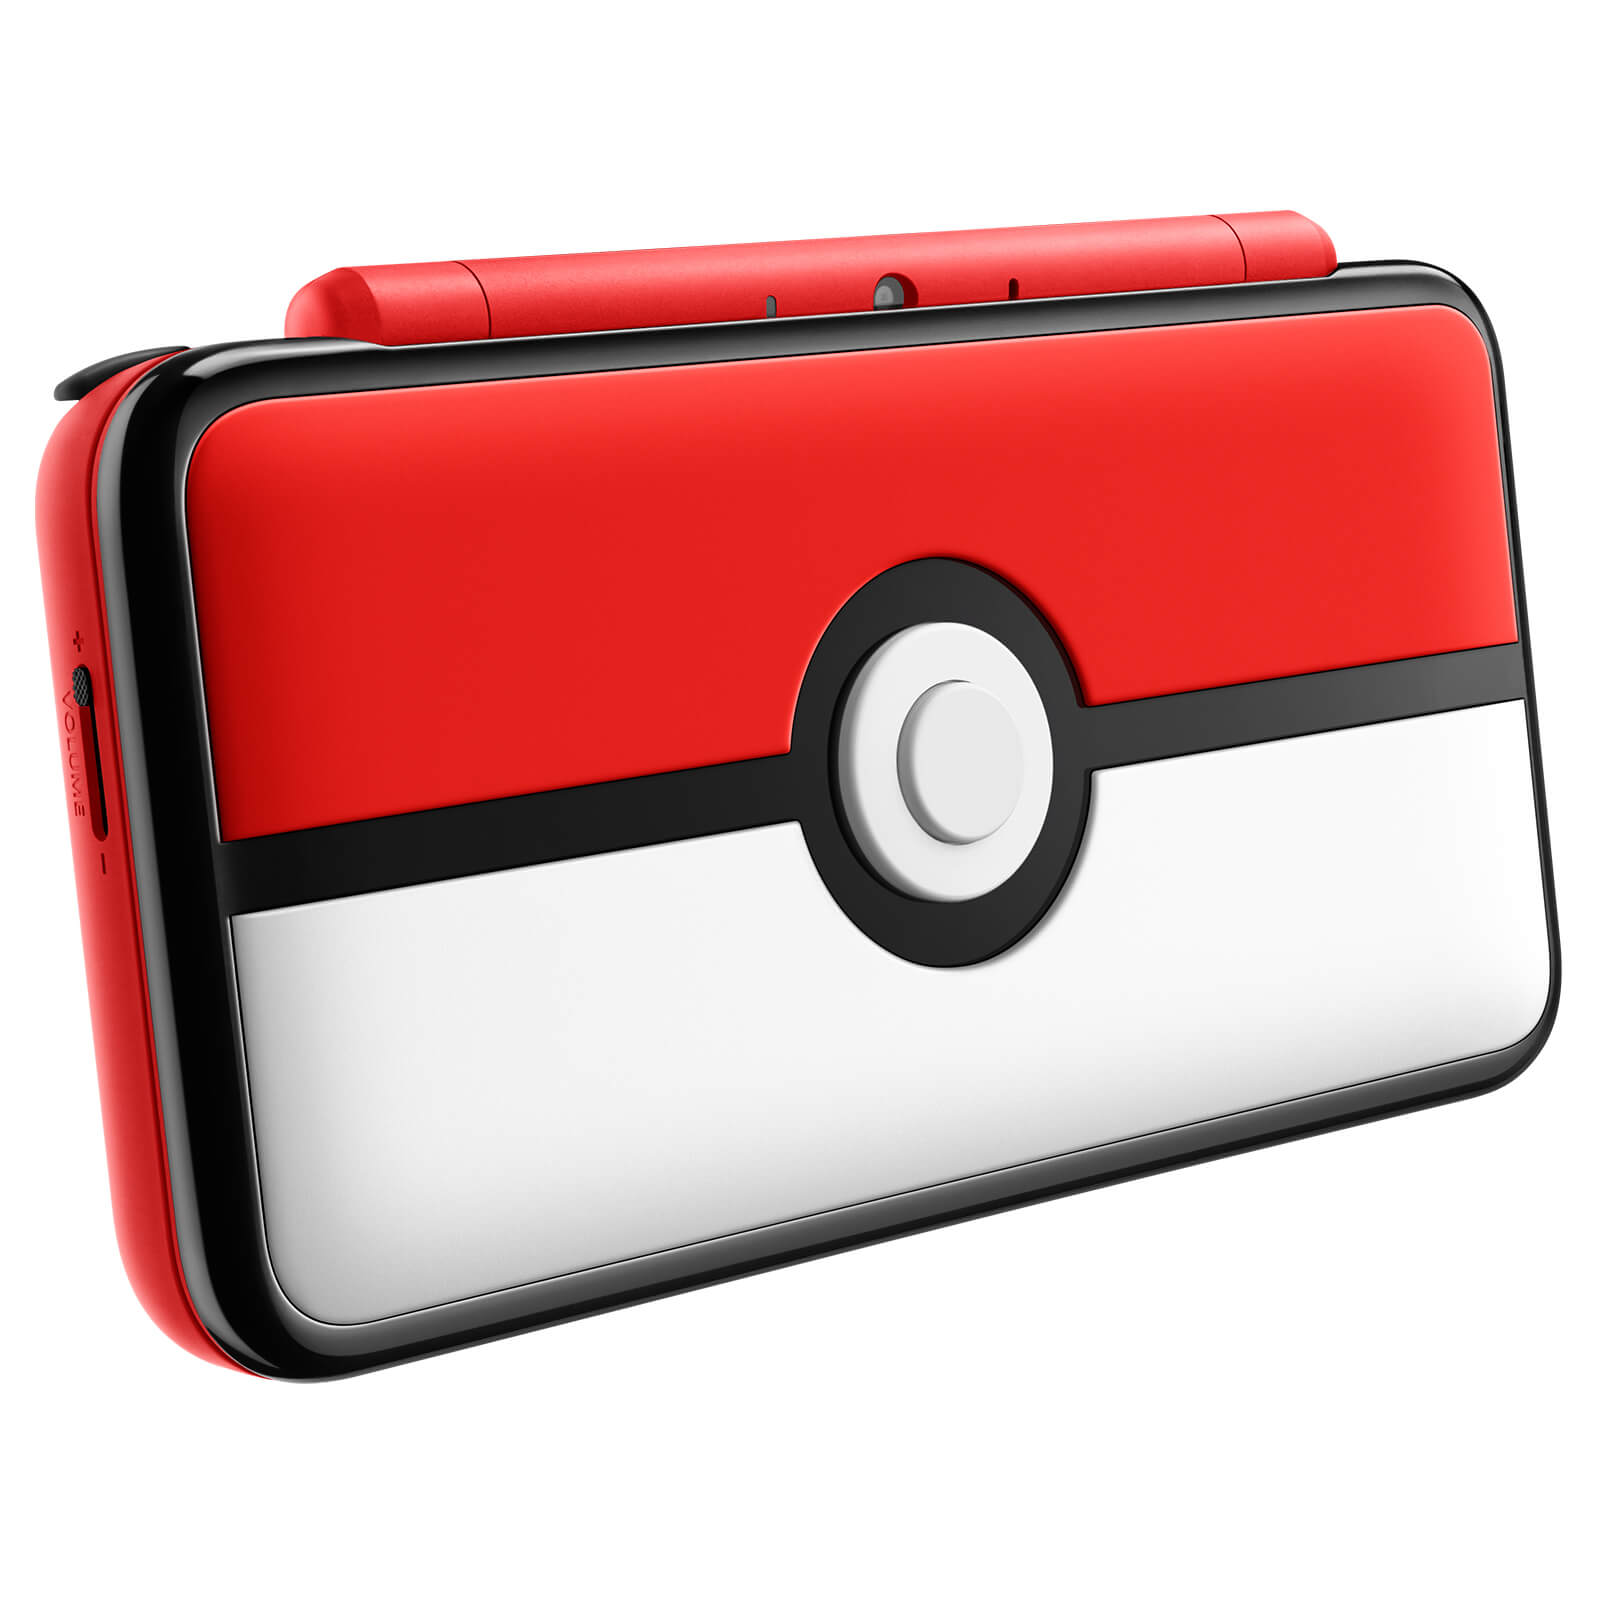 New Nintendo 2DS XL Pokéball Edition Closed